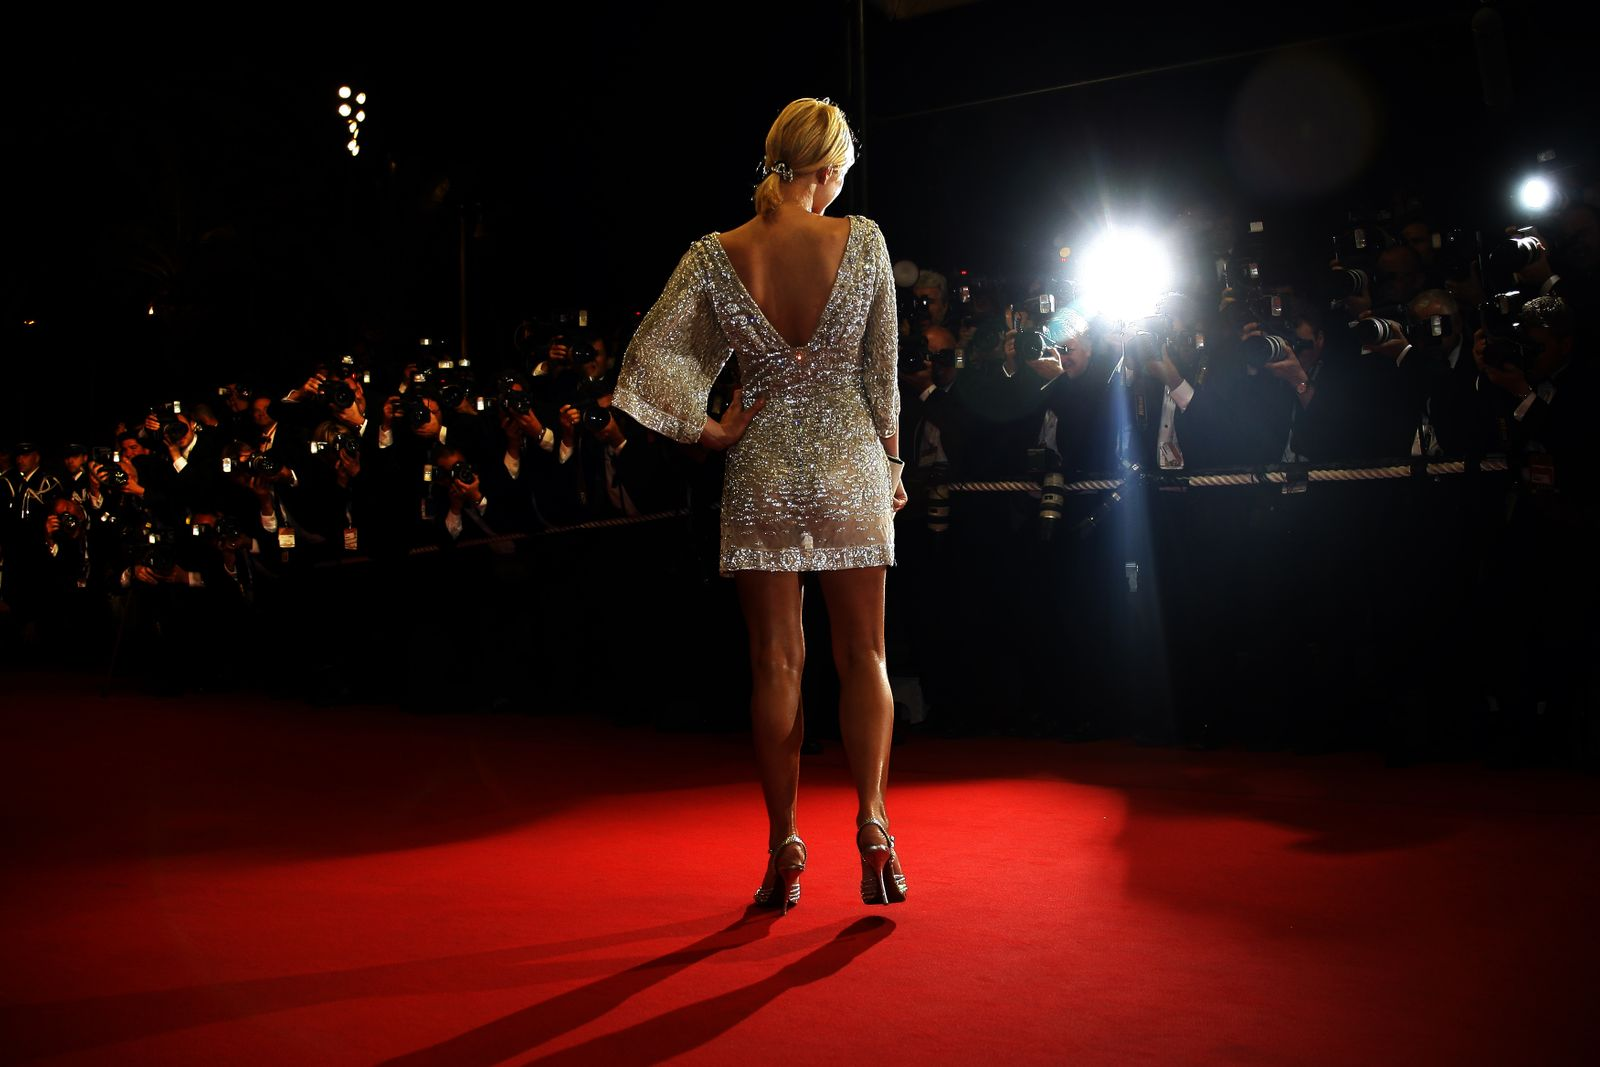 Socialite Paris Hilton arrives for screening of 'X-Men: The Last Stand' at 59th Cannes Film Festival